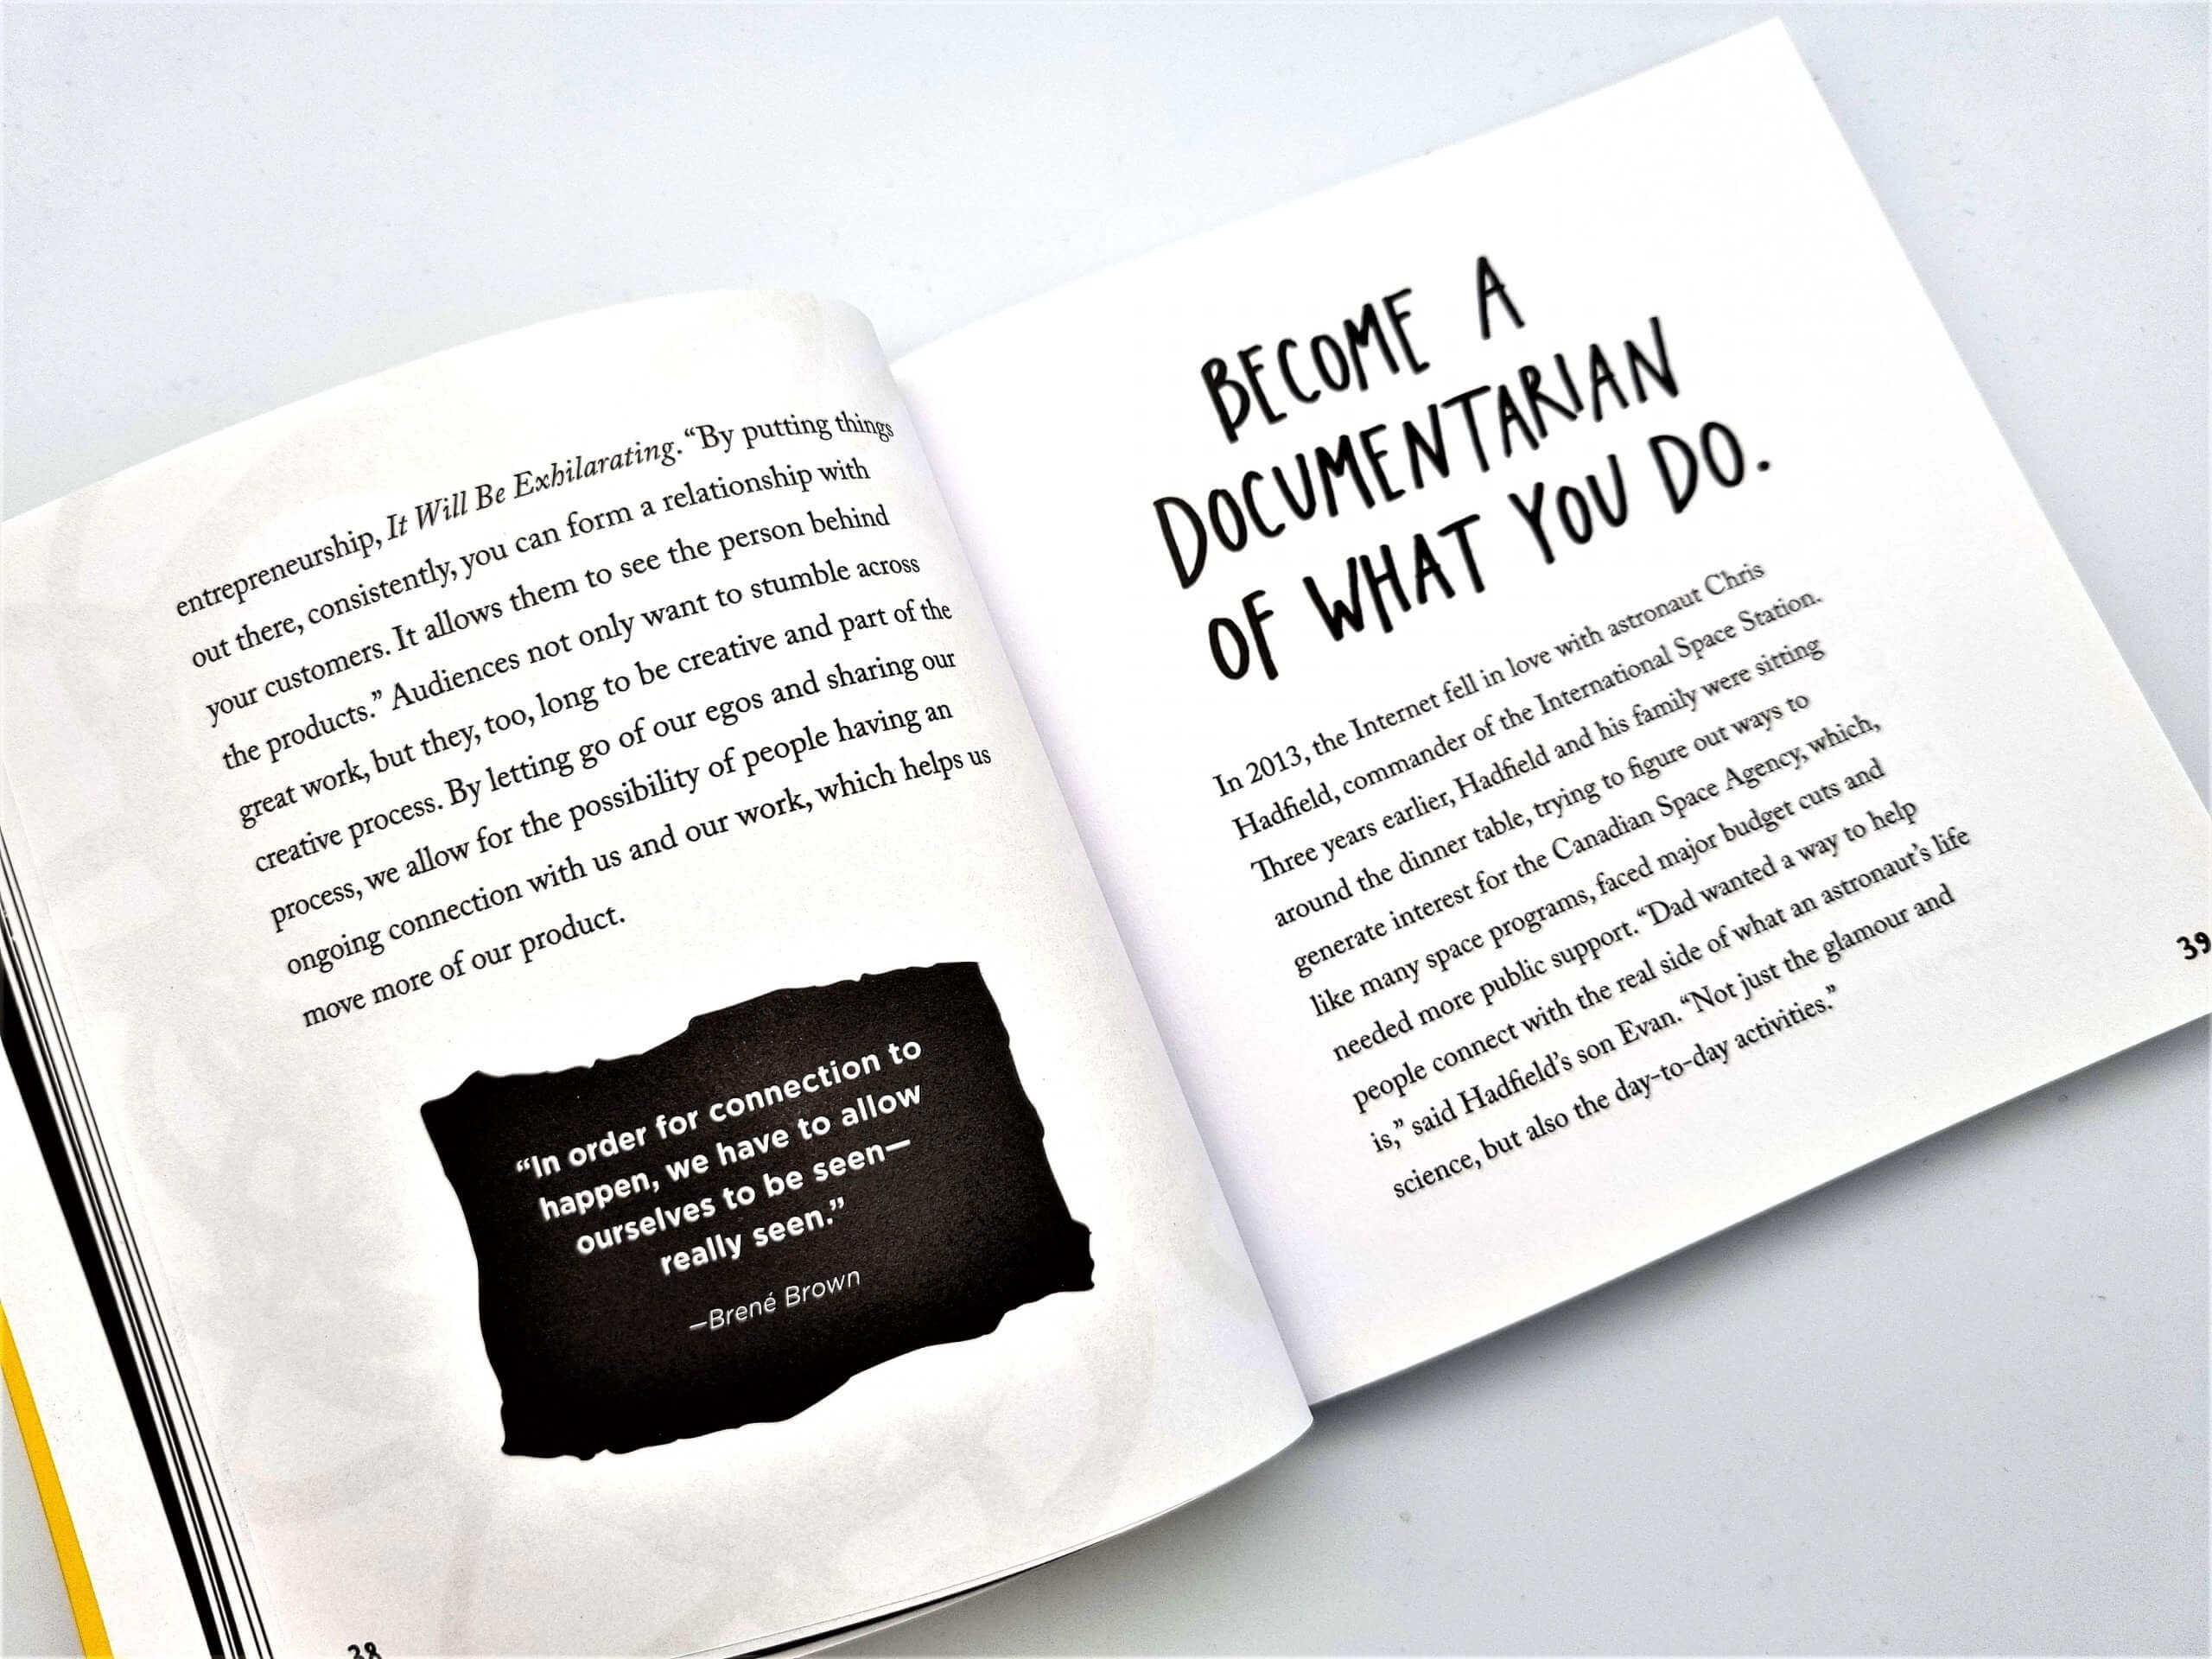 Show Your Work by Austin Kleon - Book Review - The Logo Creative (6)